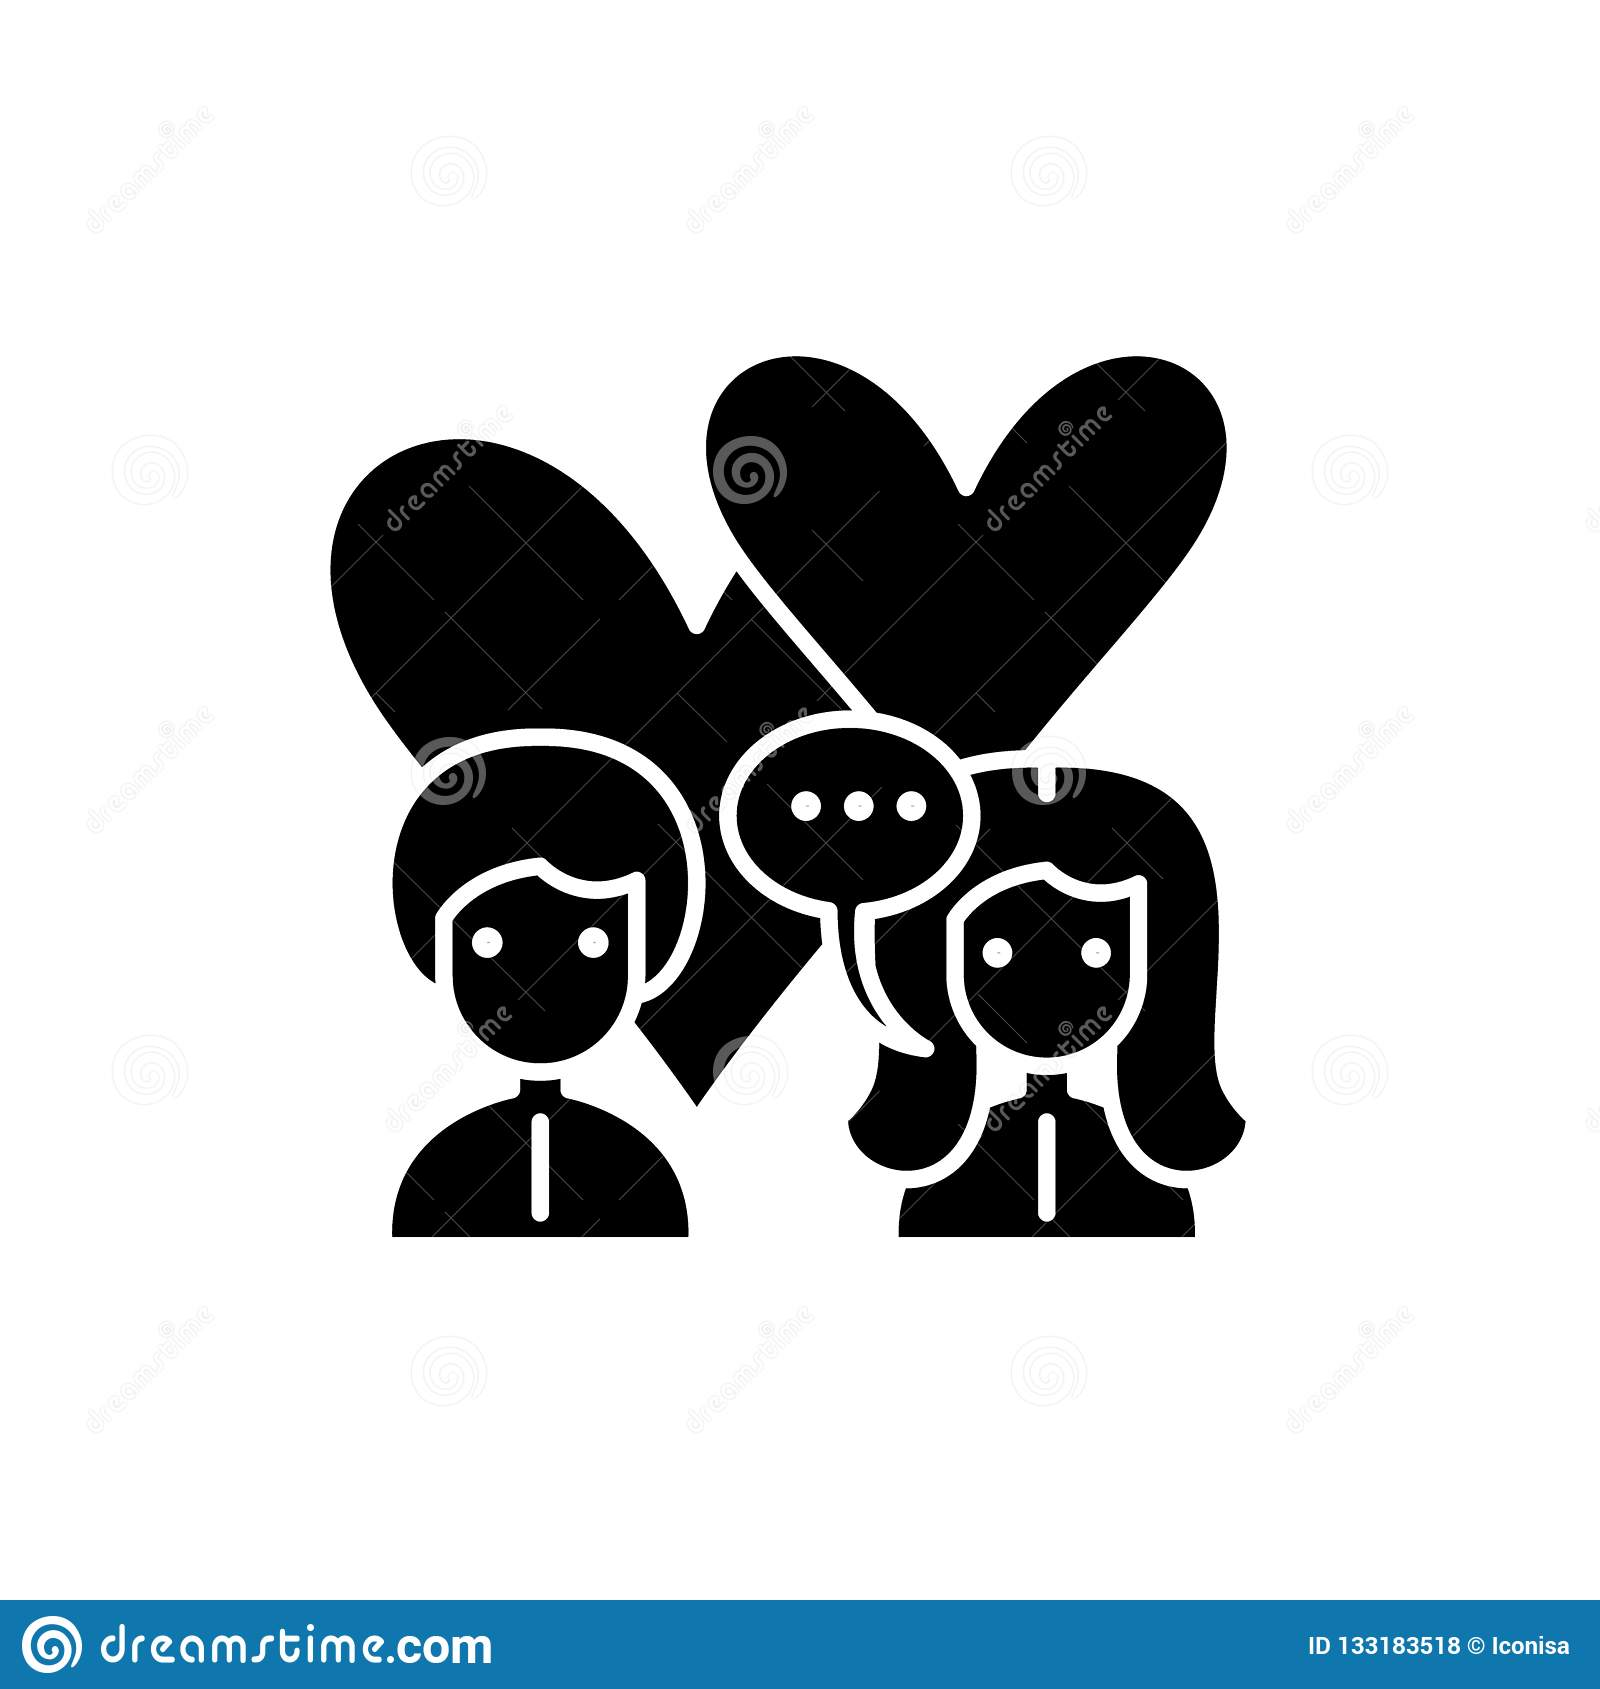 Love Relationship Black Icon Vector Sign On Isolated Background Love Relationship Concept Symbol Illustration Stock Vector Illustration Of Concept Card 133183518